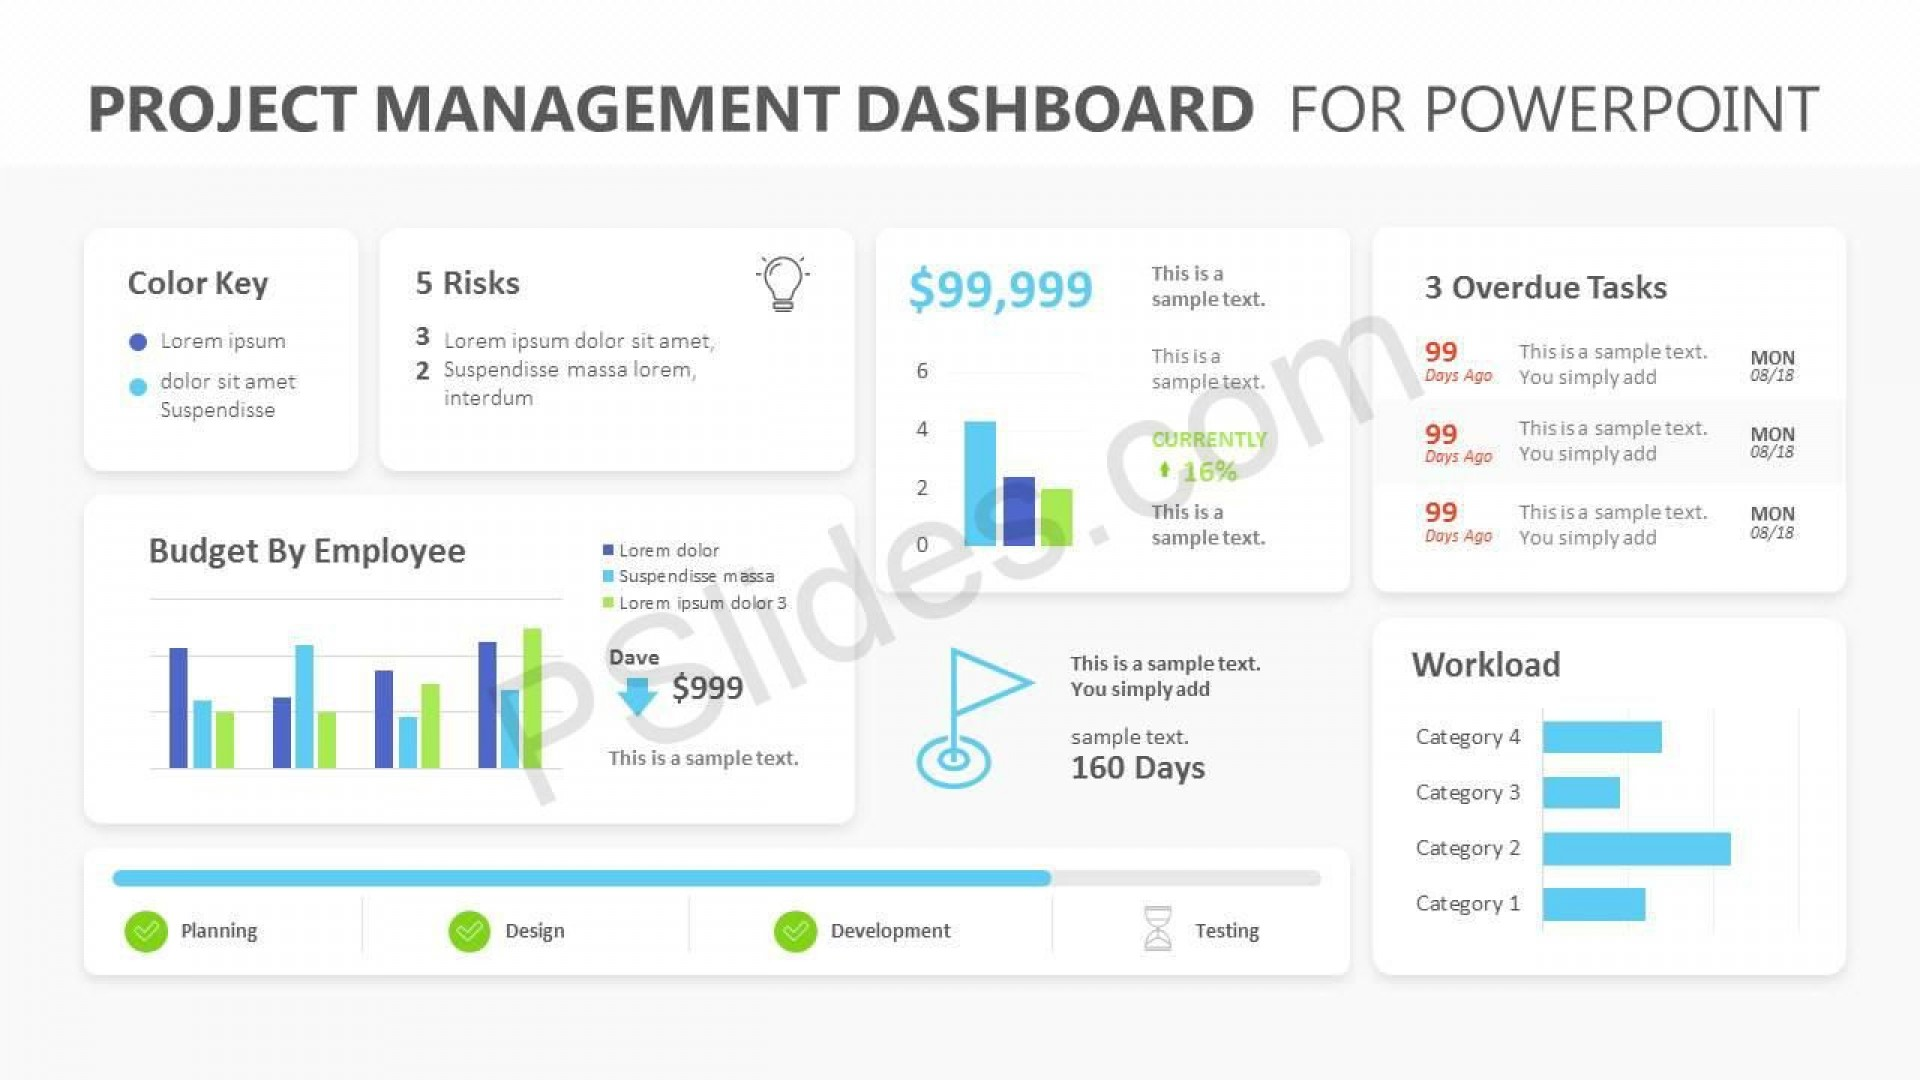 006 Incredible Project Management Dashboard Powerpoint Template Free Download Concept 1920